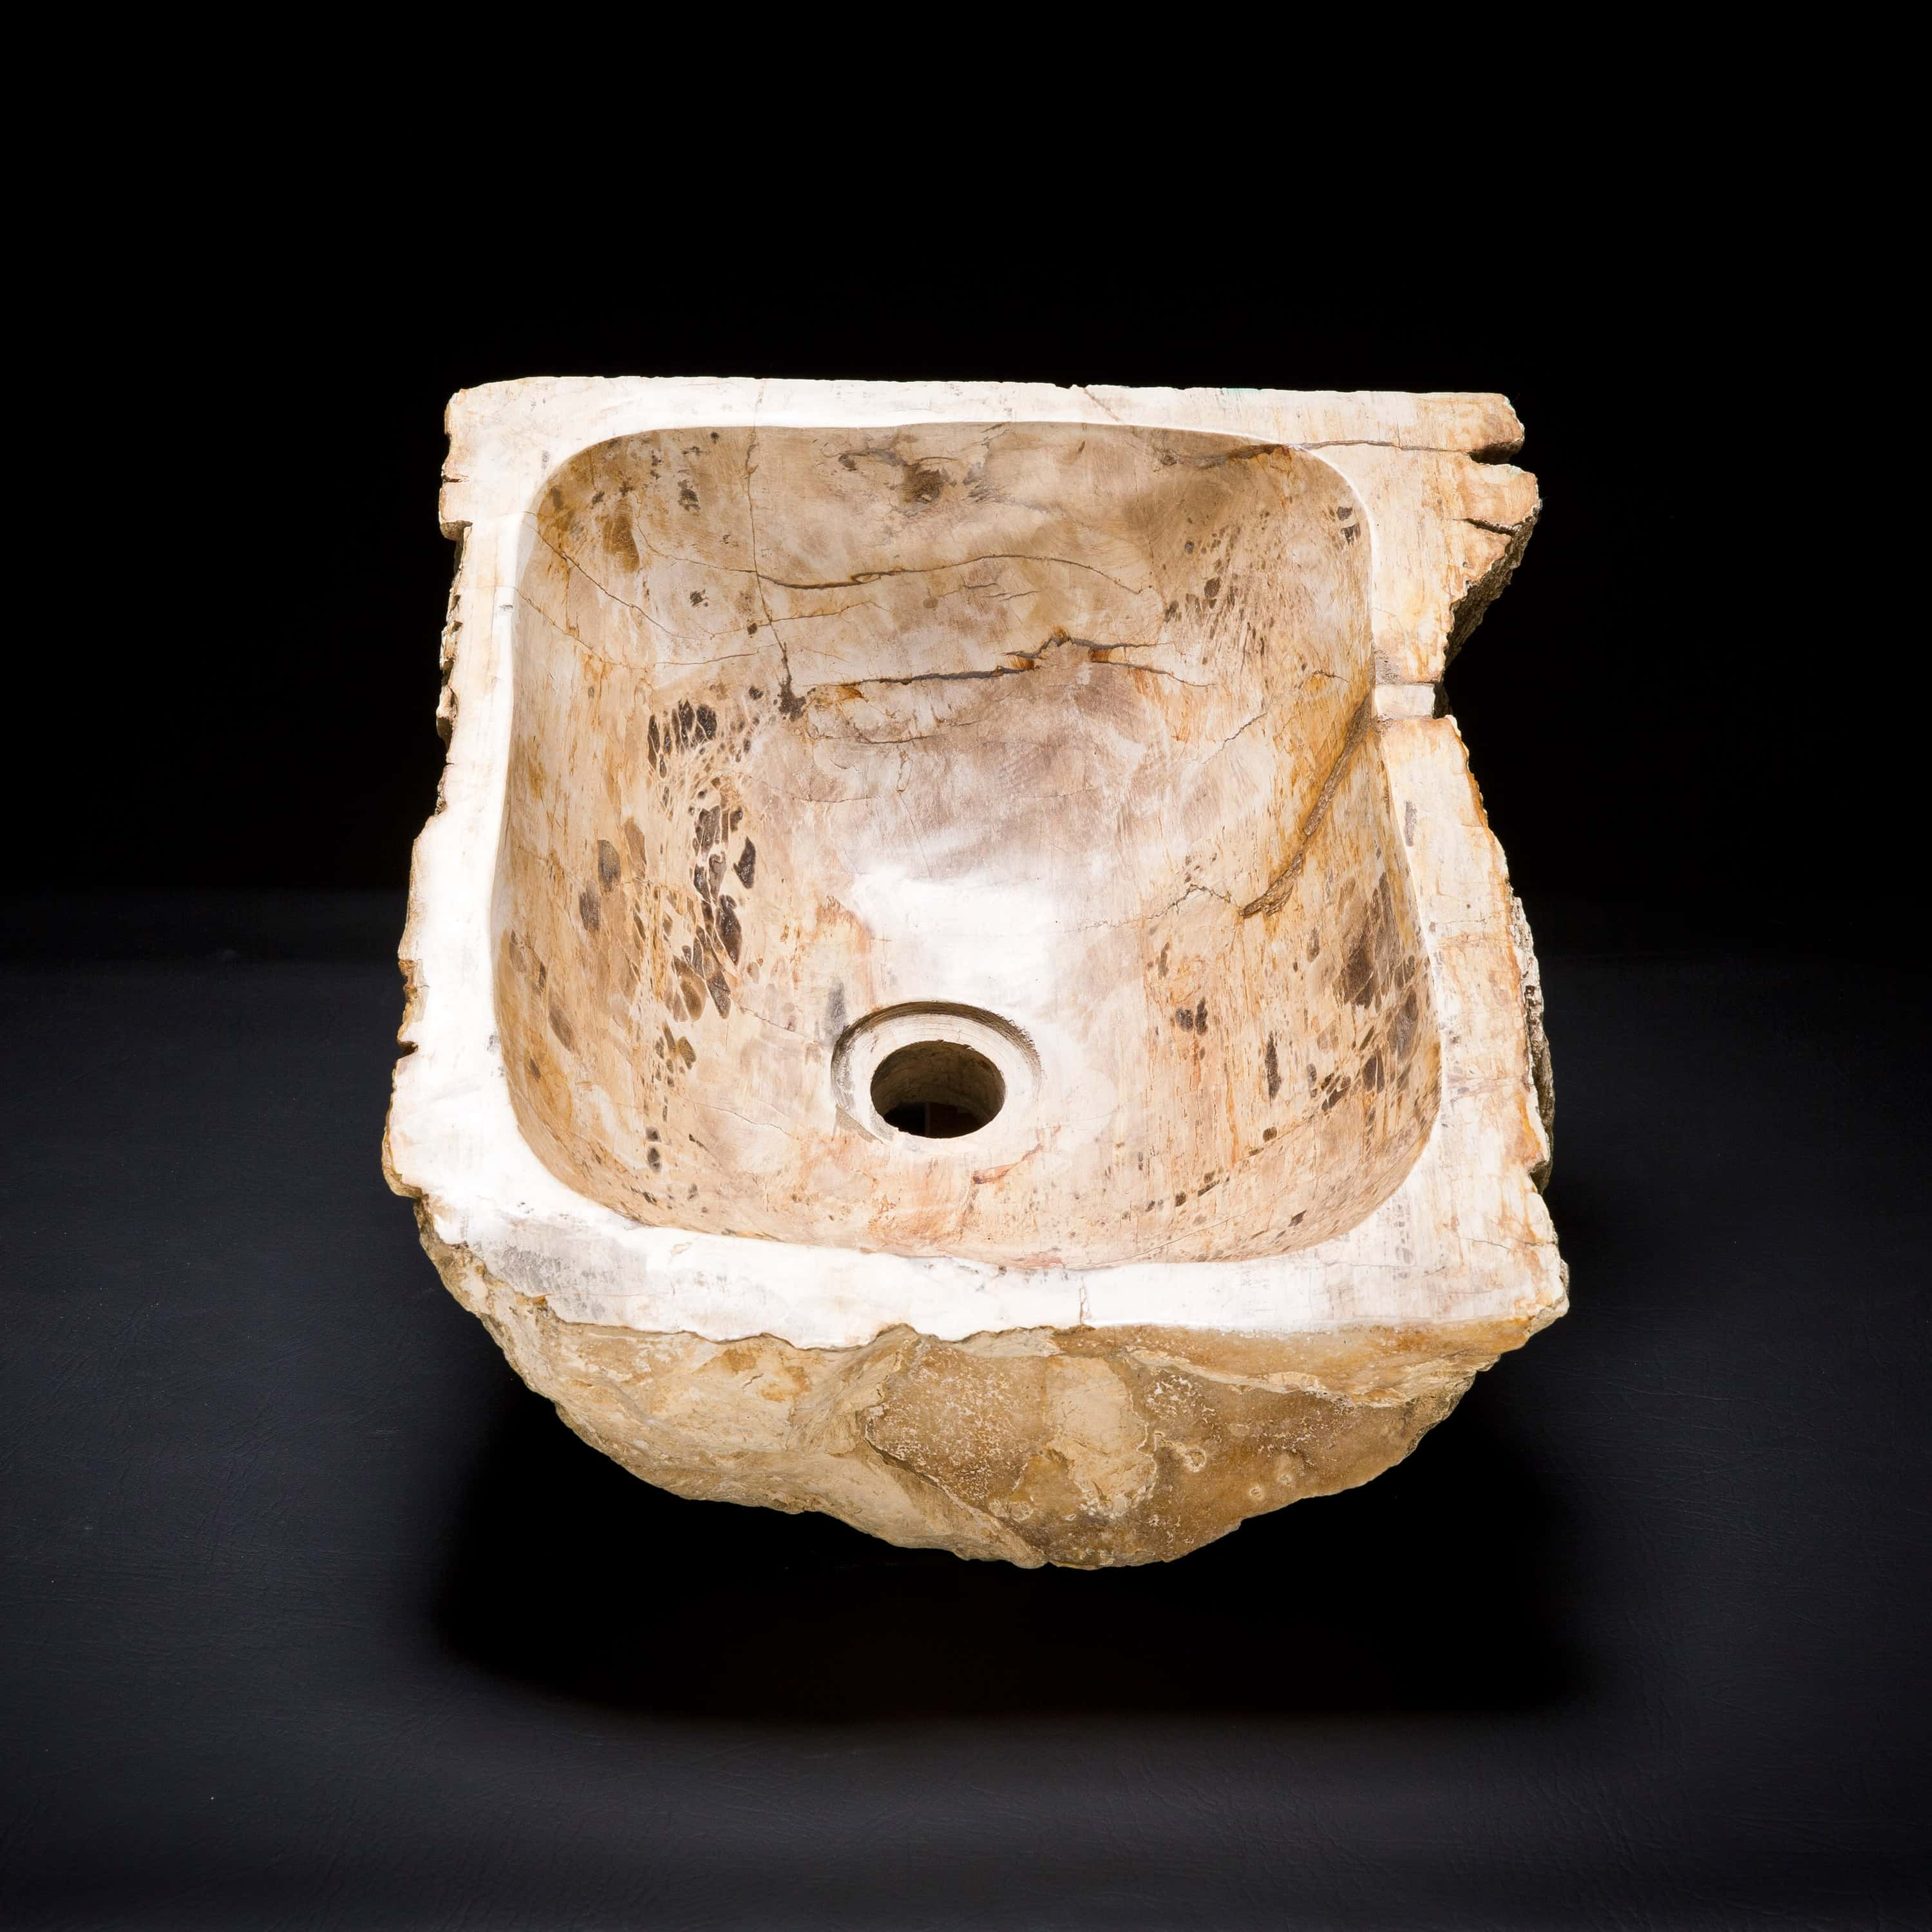 Rare Petrified Wood Fossil Vessel Sink With Iridescence